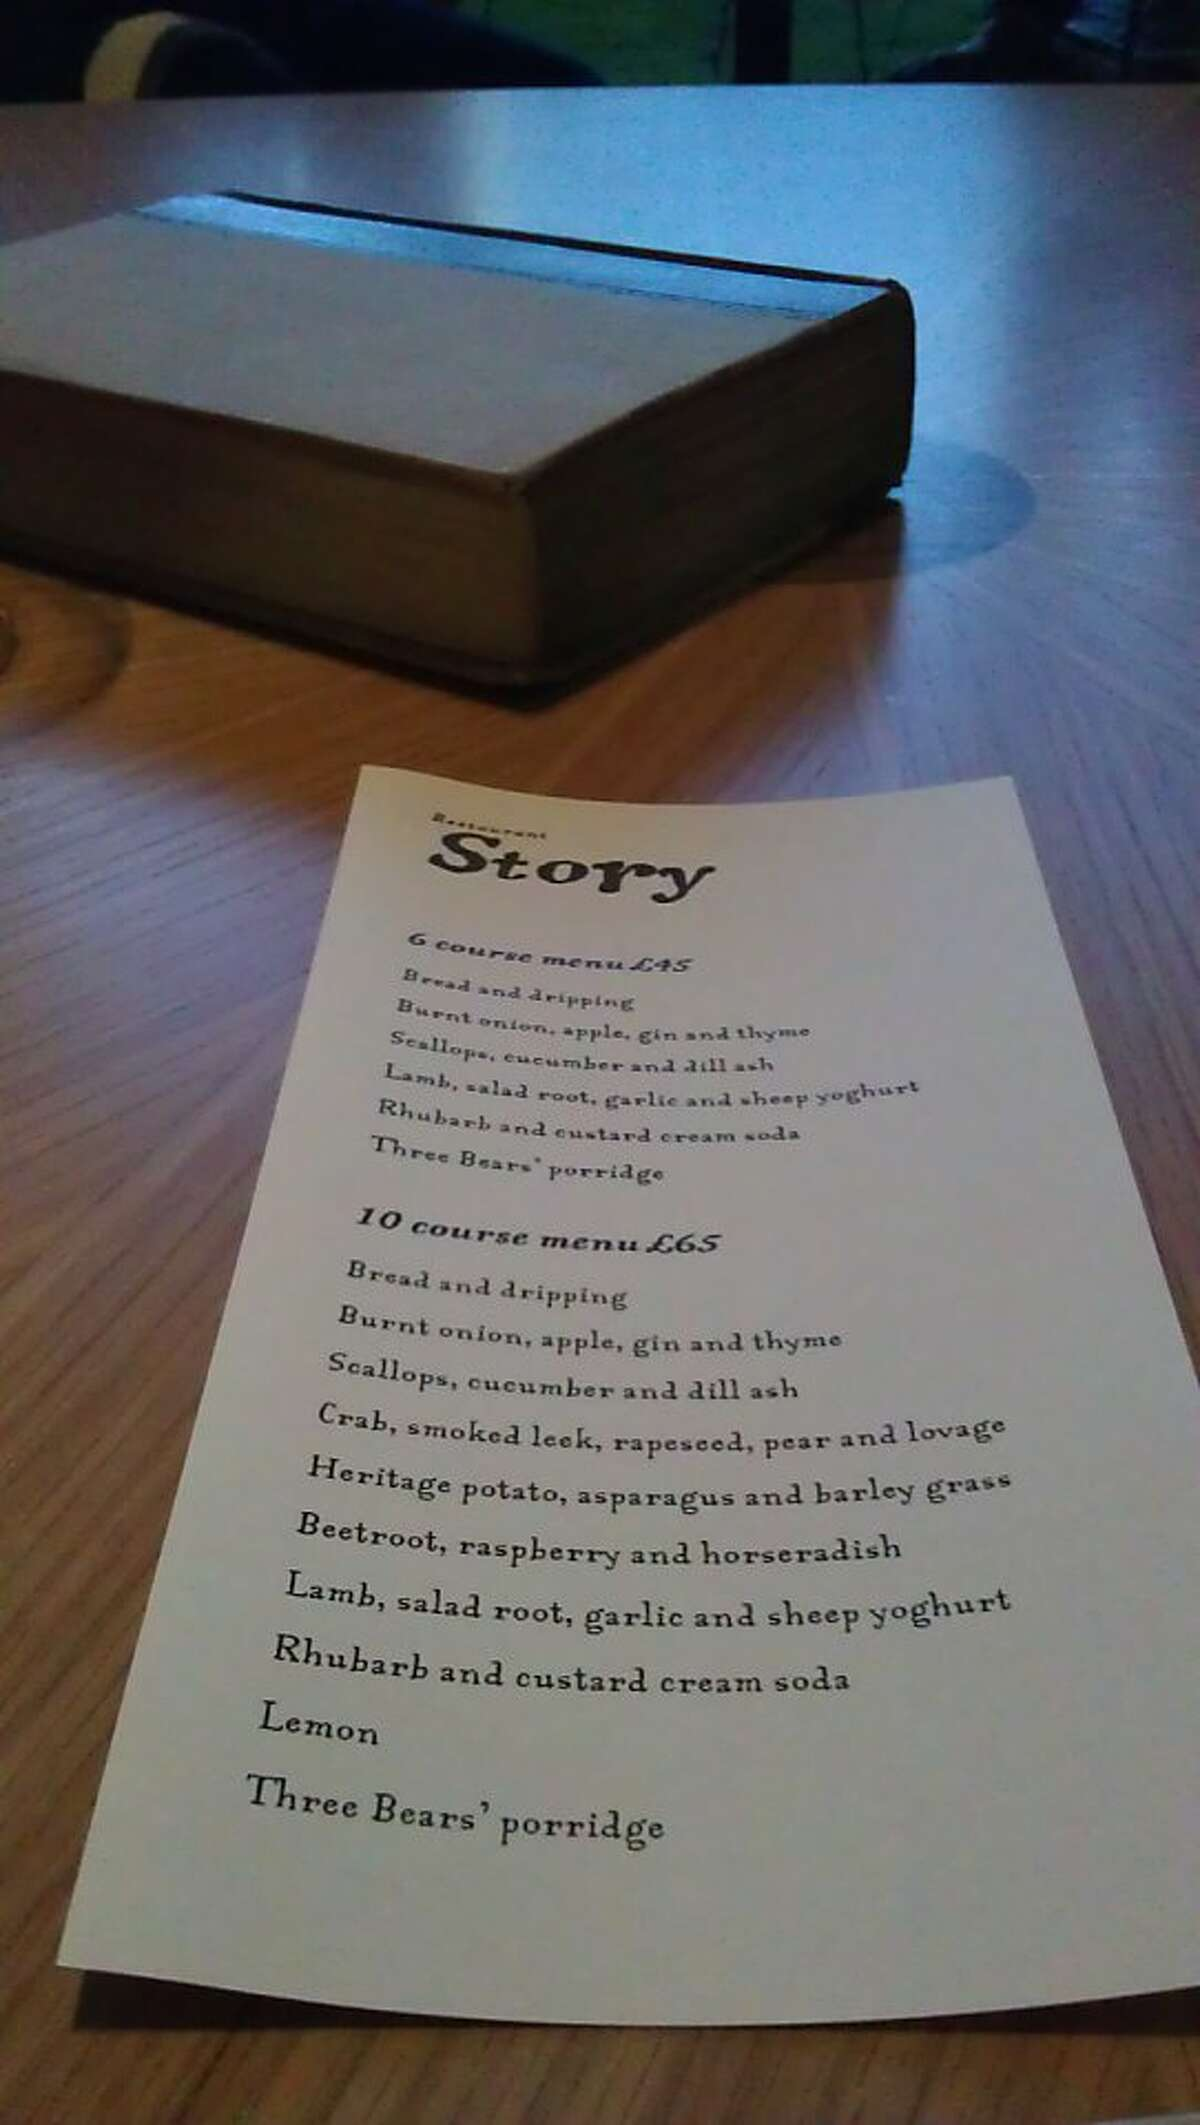 A menu at the restaurant Story, near the Tower Bridge in London. The city's top restaurants are beginning to feature more small-production California wines.